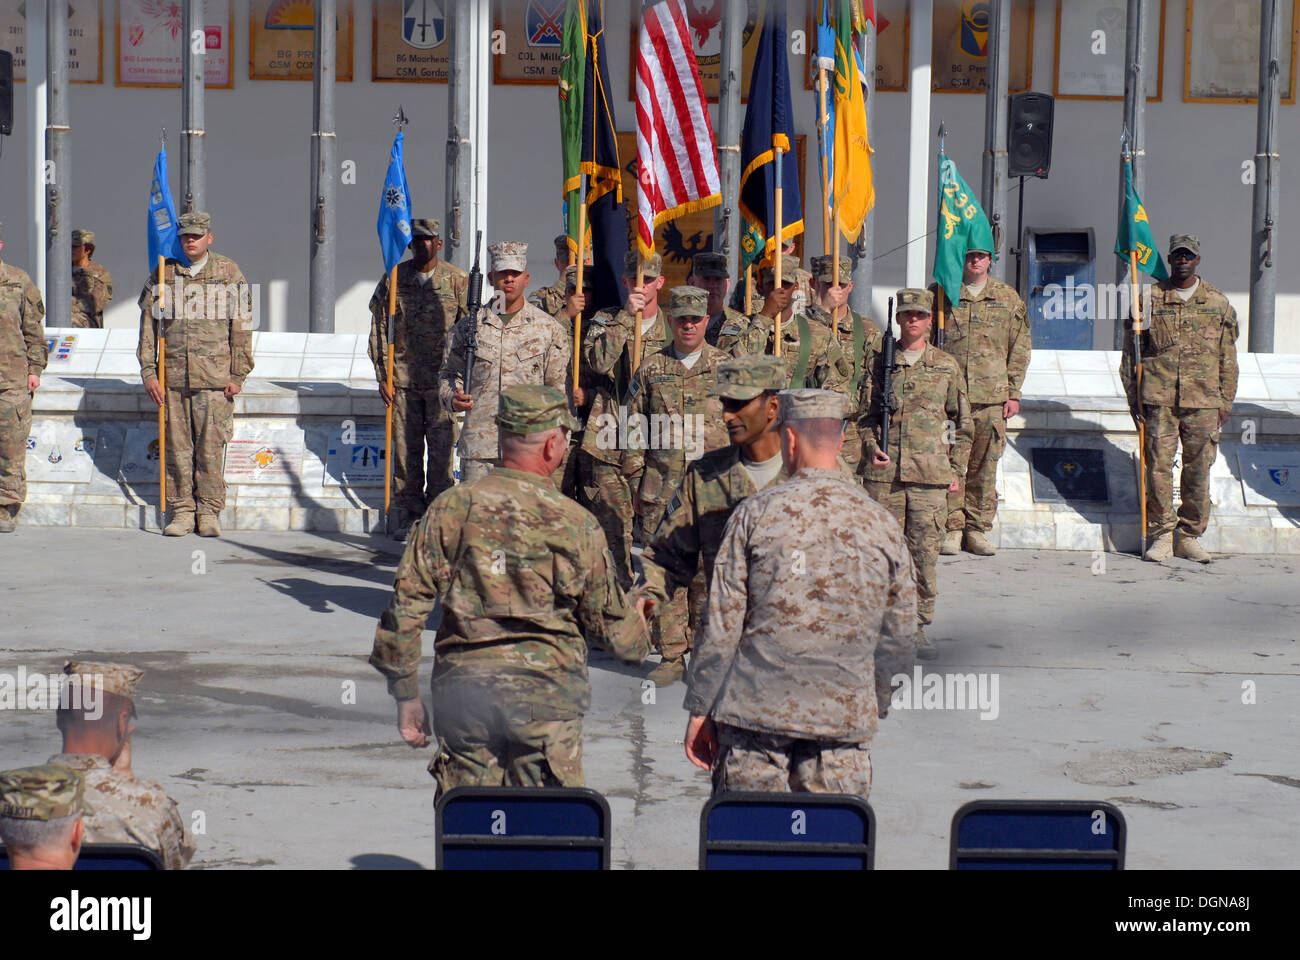 Brig. Gen. Mark S. Inch assumes command of CJIATF 435. More than 150 team members of the Combined Joint Interagency Stock Photo